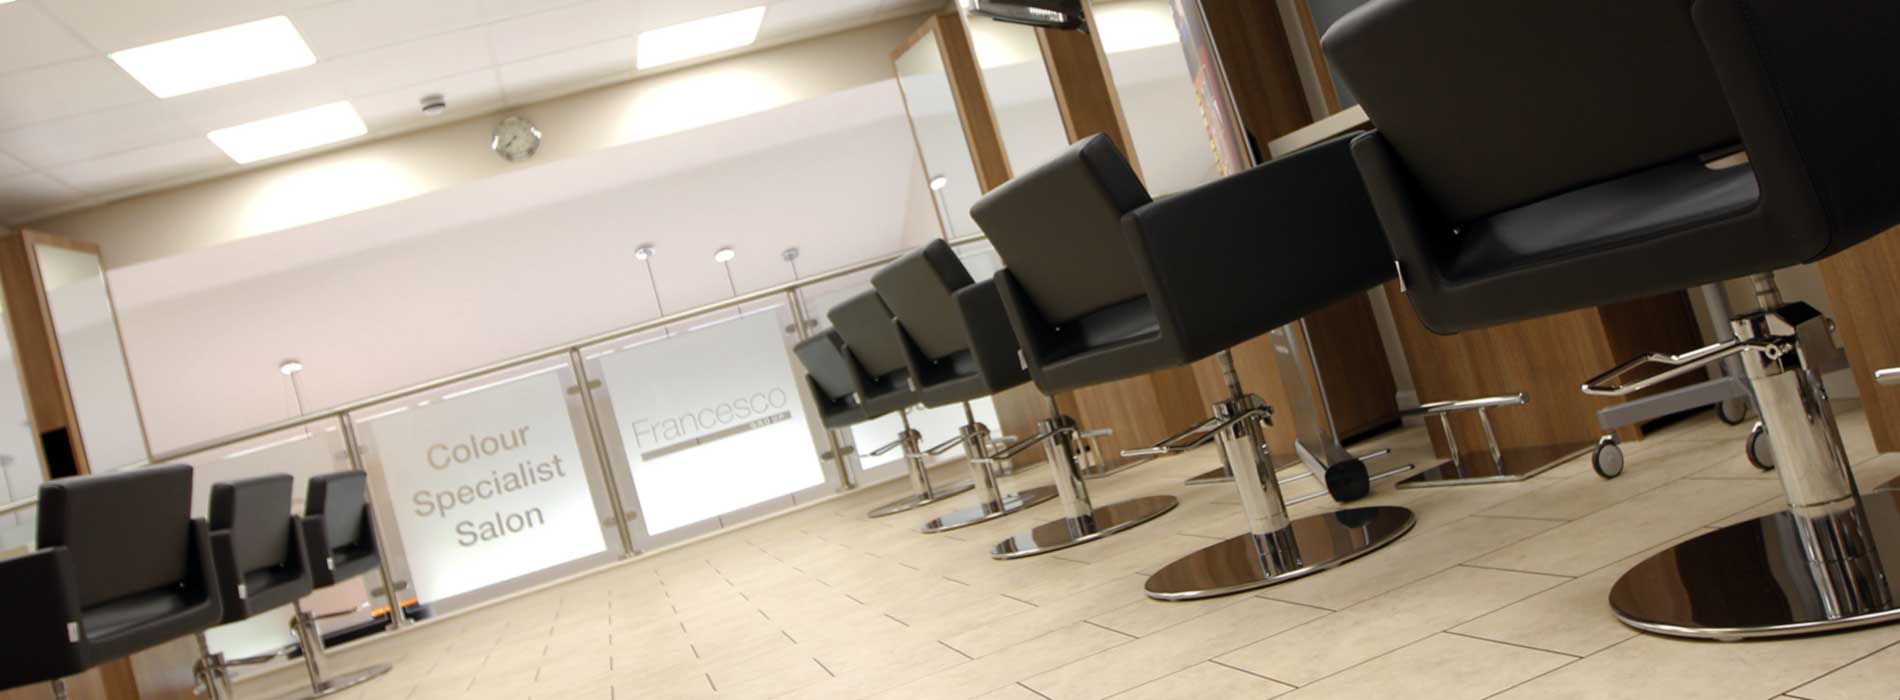 Francesco Group Hairdressing Salons